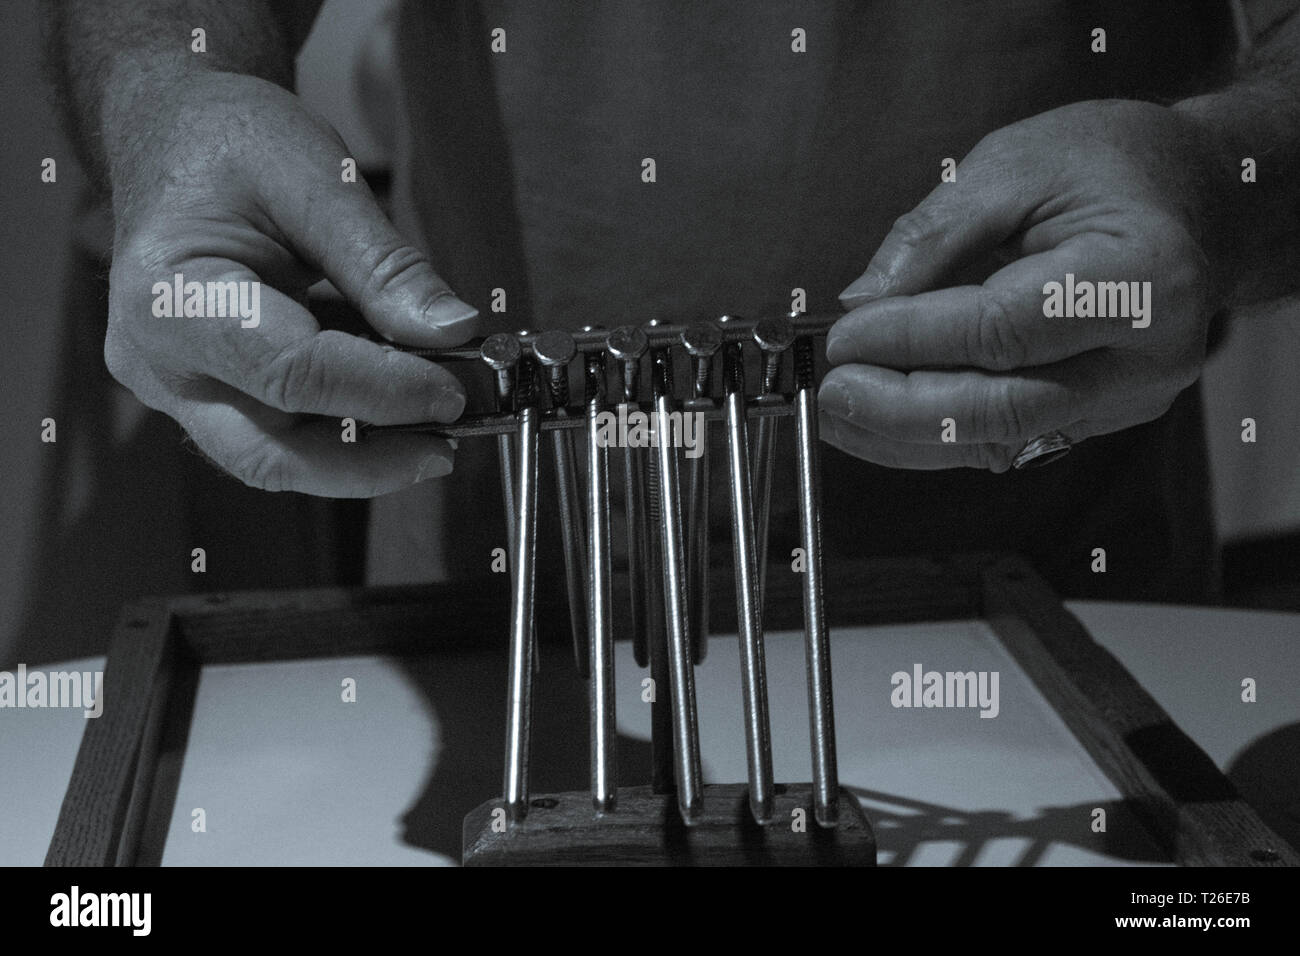 Working A Puzzle - Stock Image